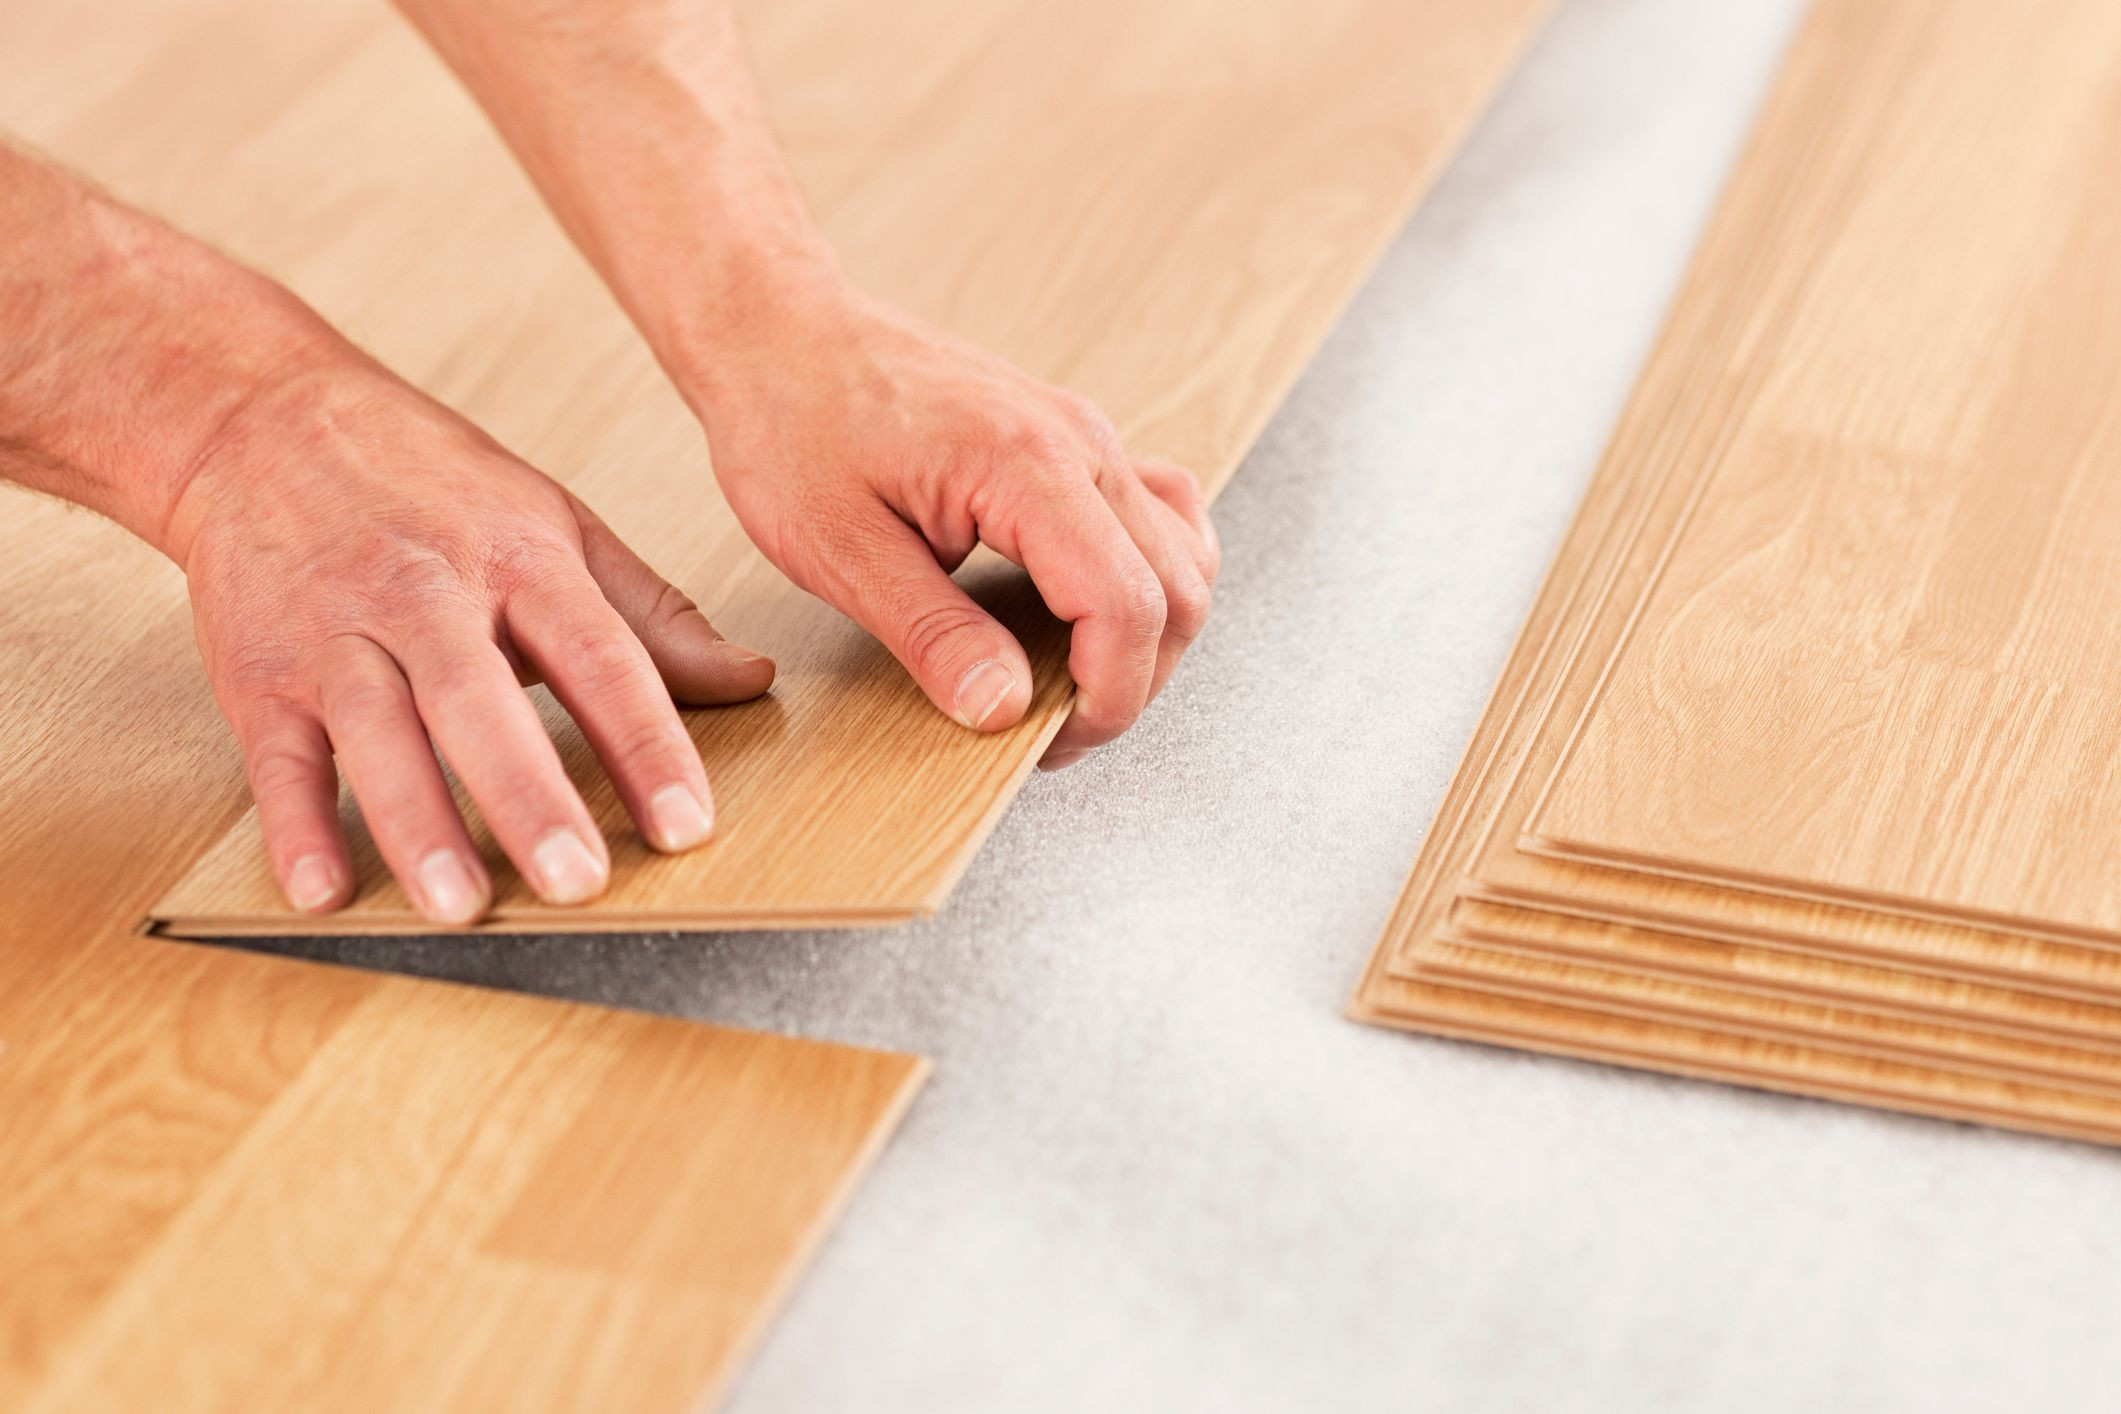 Wide Plank Hardwood Flooring Problems Of Laminate Underlayment Pros and Cons for Laminate Floor Install Gettyimages 154961561 588816495f9b58bdb3da1a02